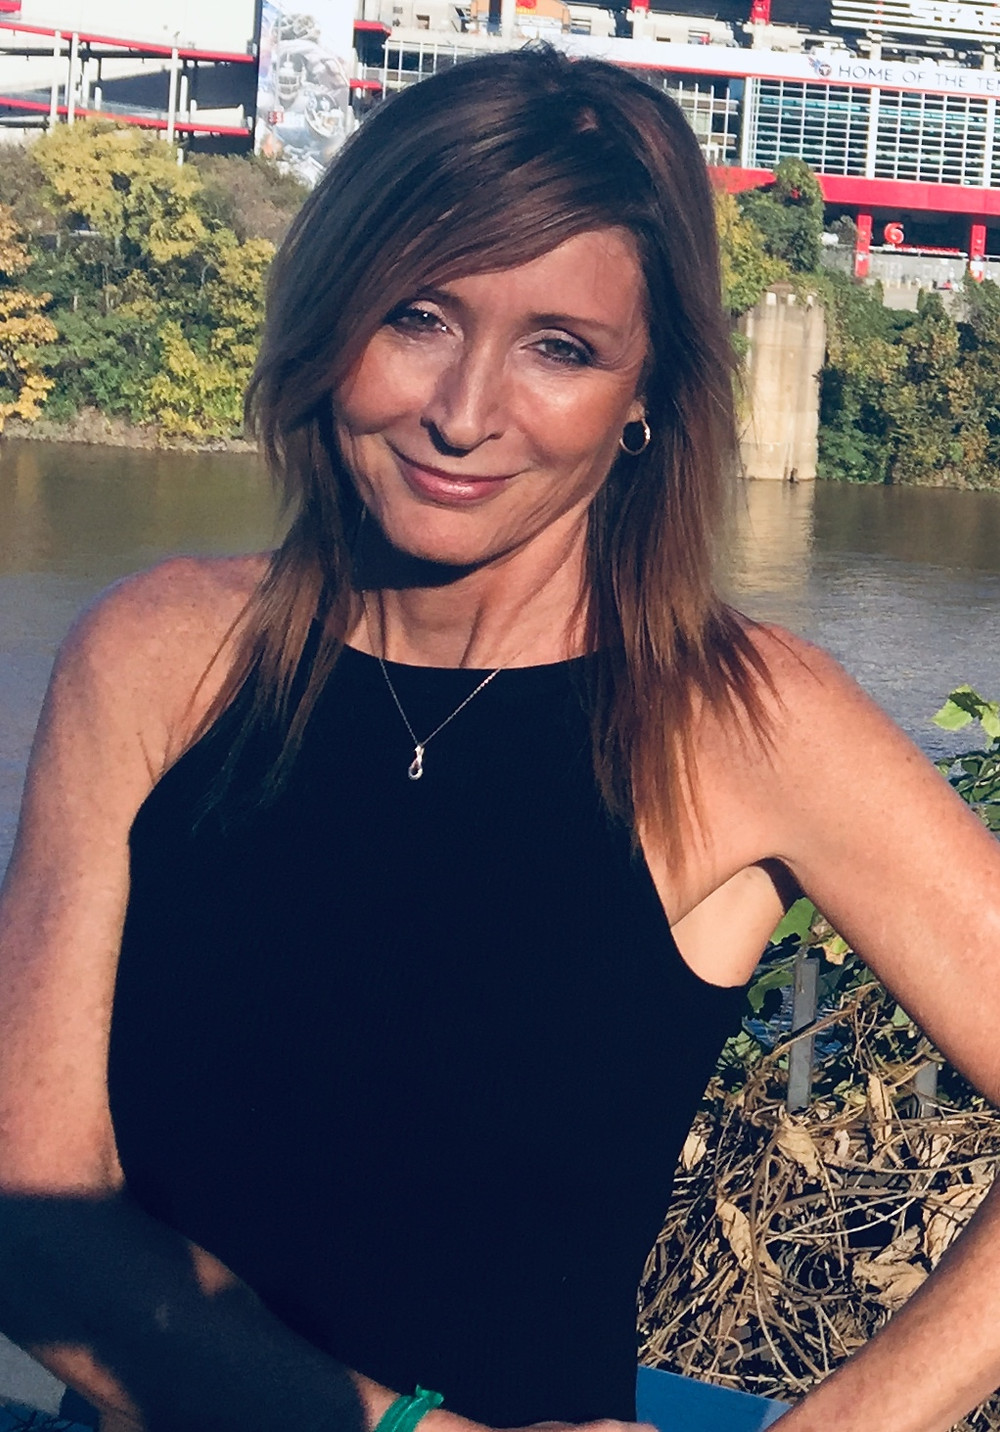 Tressa Rieser, Primal Health Coach, enjoying the sunshine and scenery on a beautiful fall day.